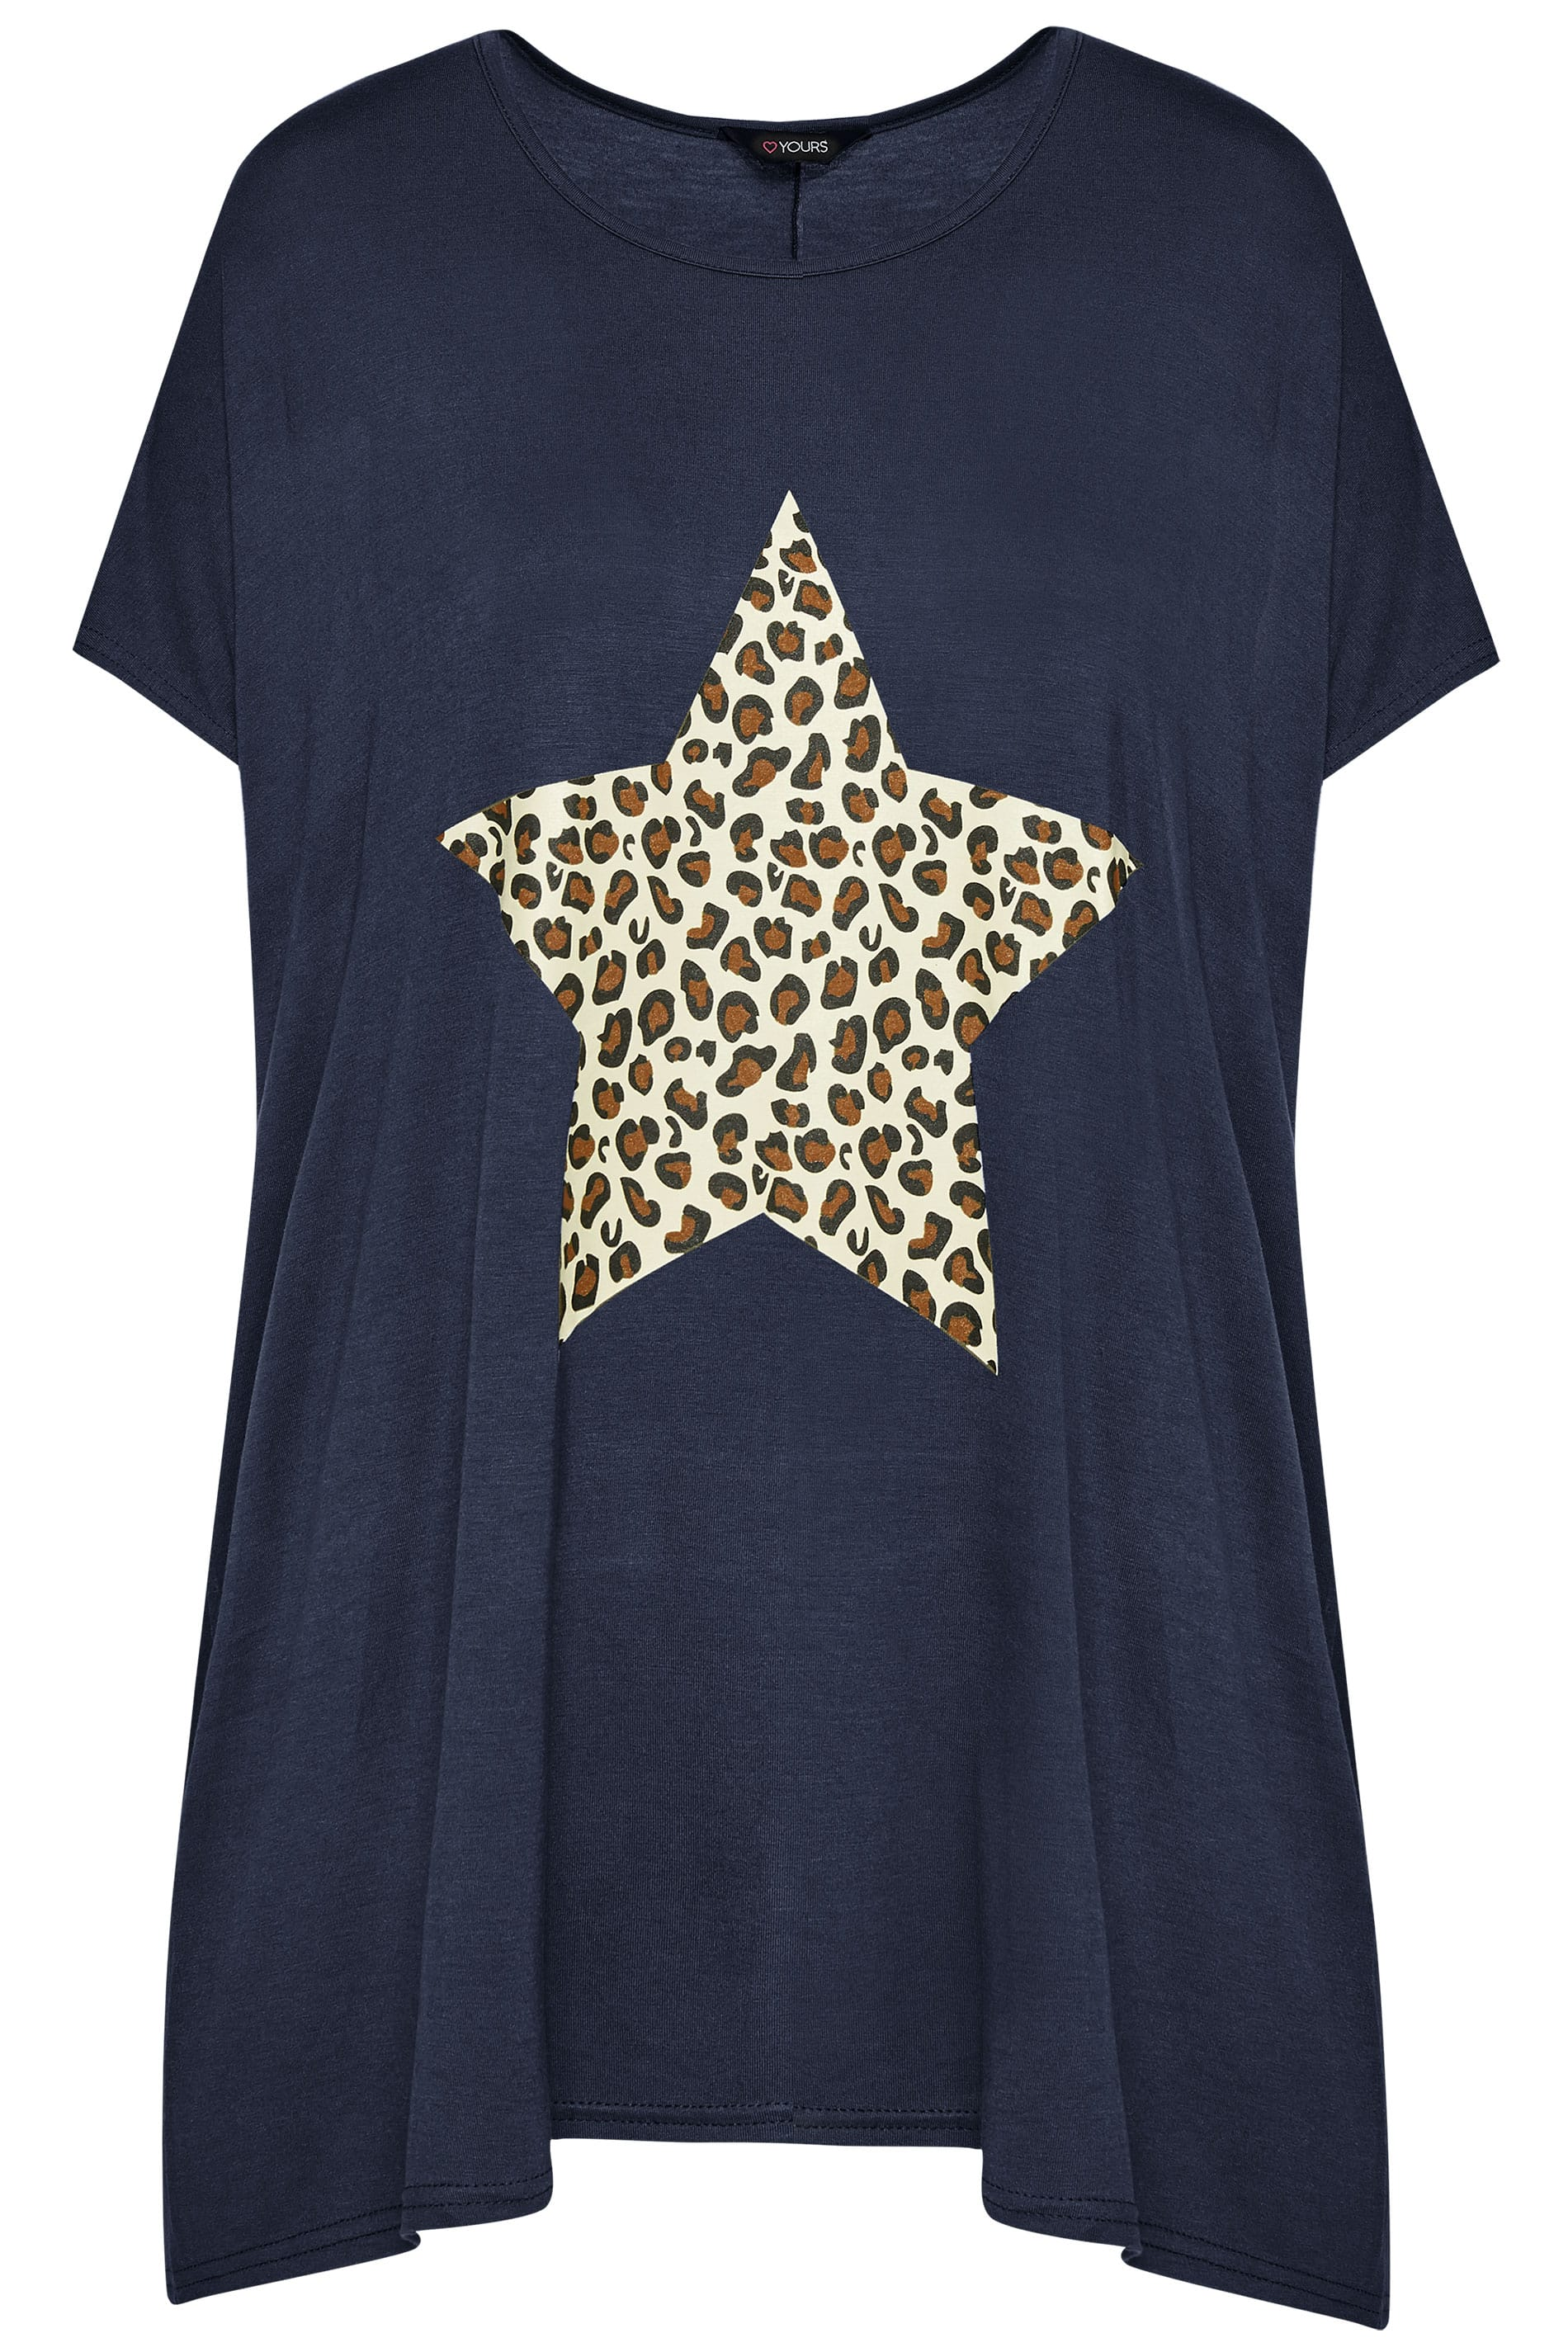 bc3f6ca68871 Navy Leopard Star Print T-Shirt | Sizes 16-40 | Yours Clothing